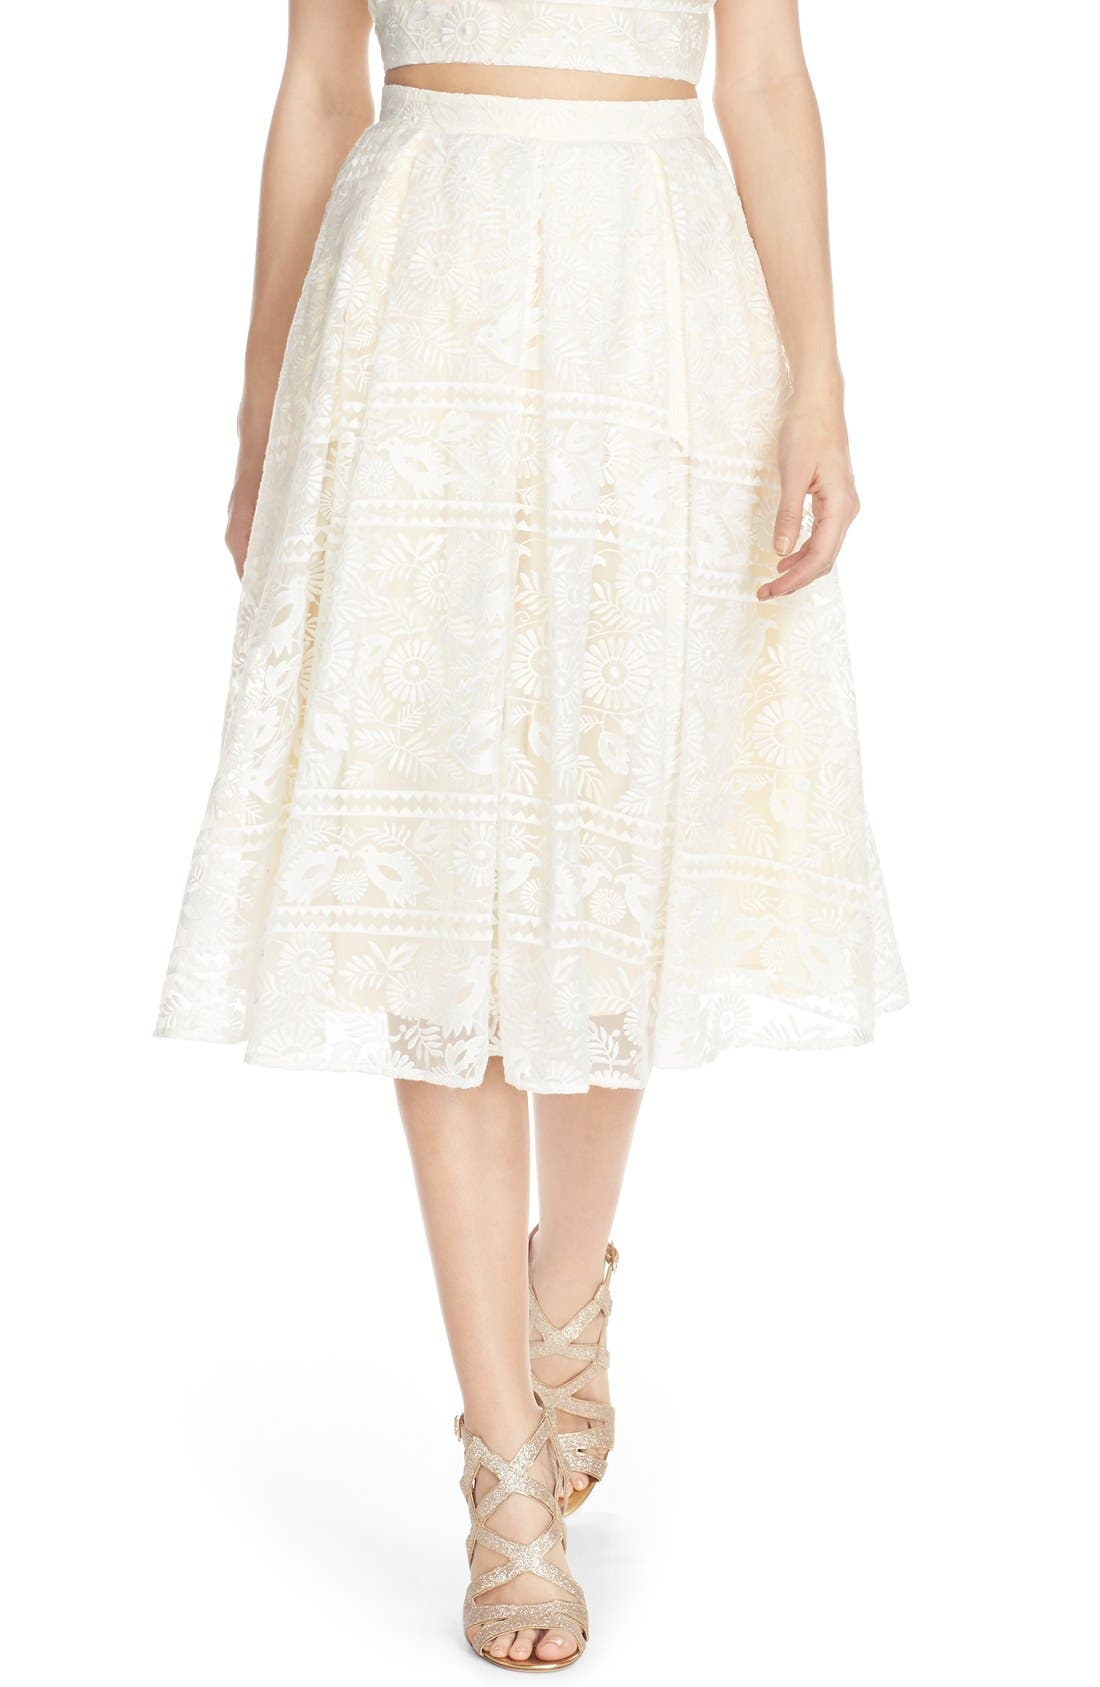 Alternate Image 1 Selected - Paper Crown by Lauren Conrad 'Marietta' Lace Organza Full Skirt